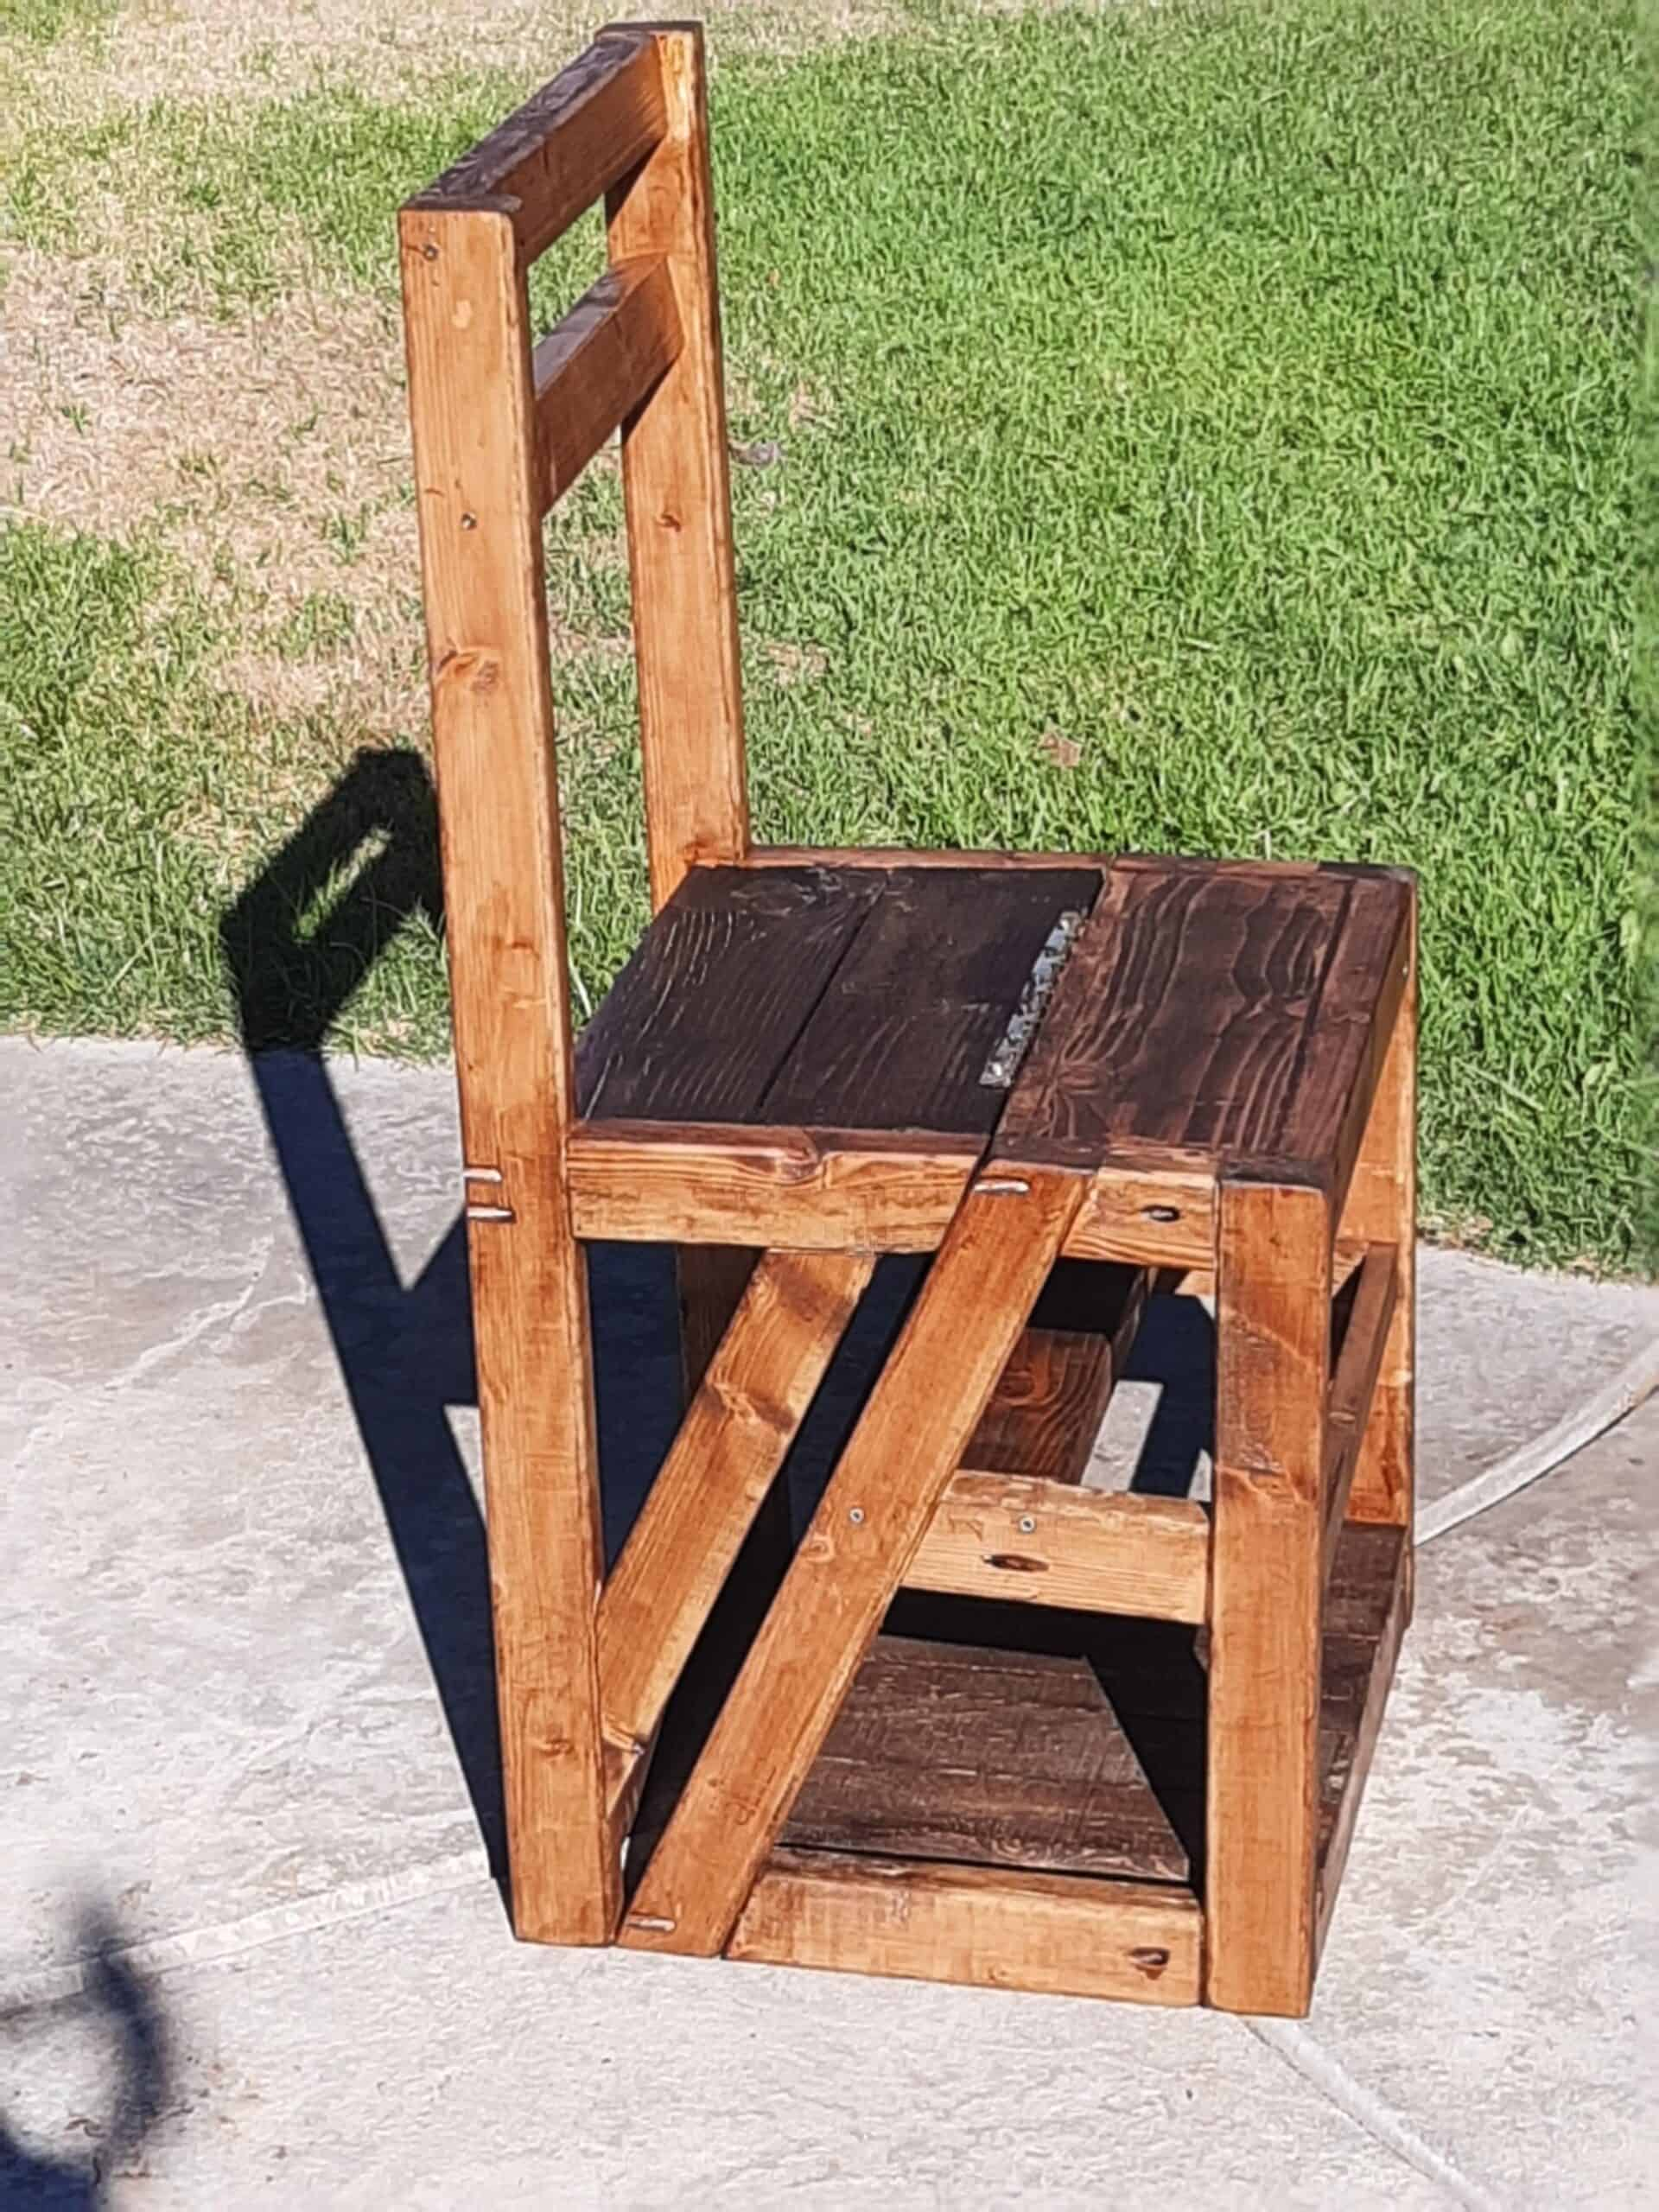 The Pallet Library Chair